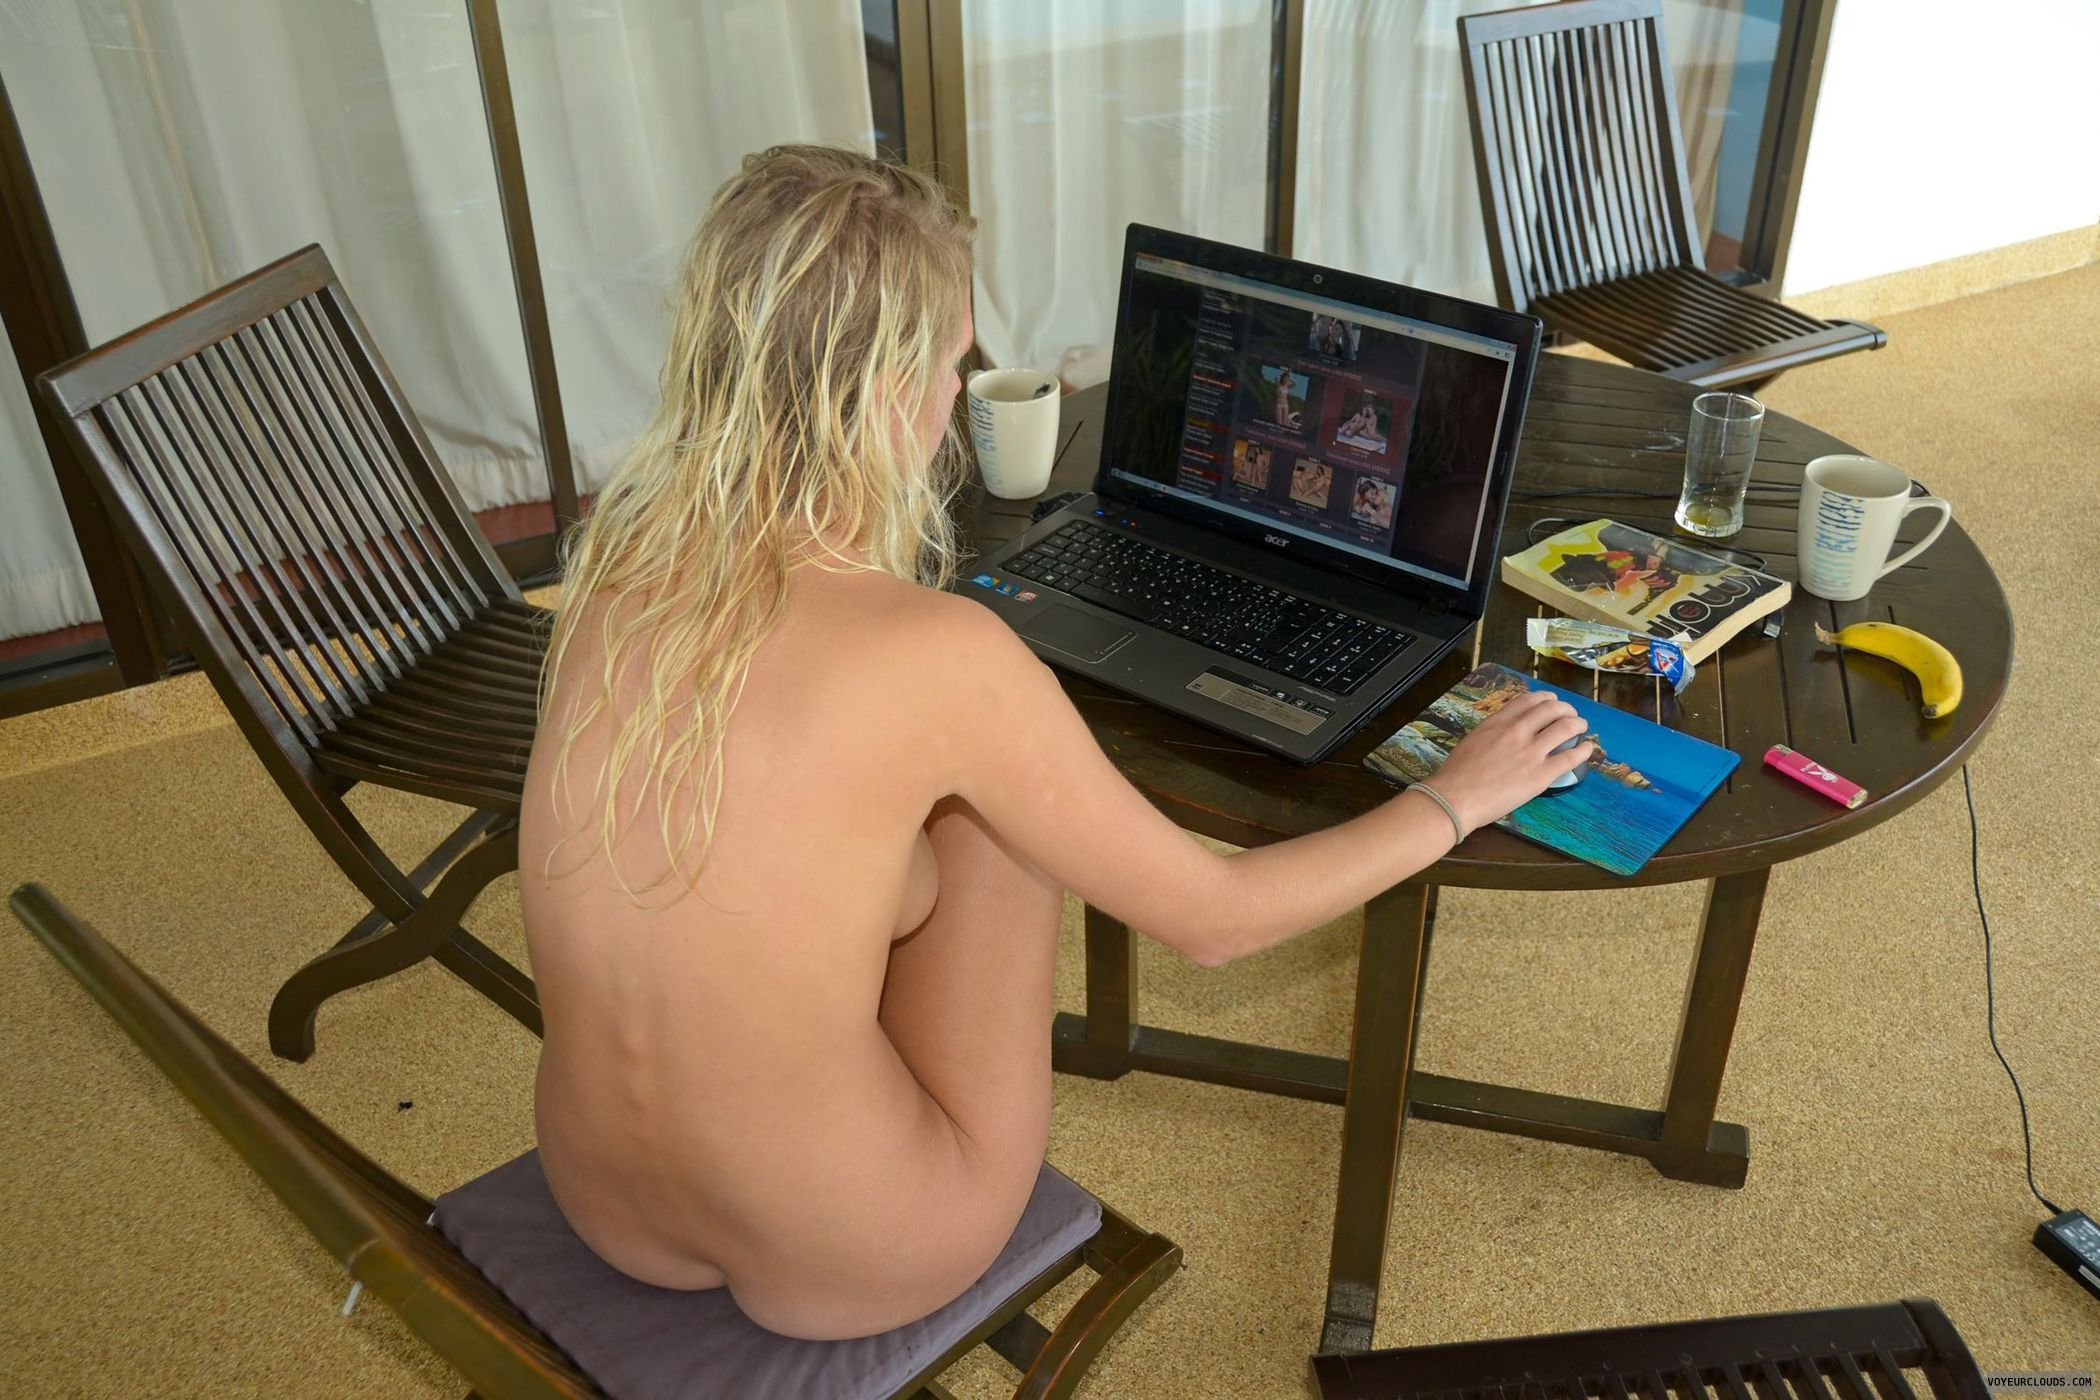 Virtual nudity nackt scene